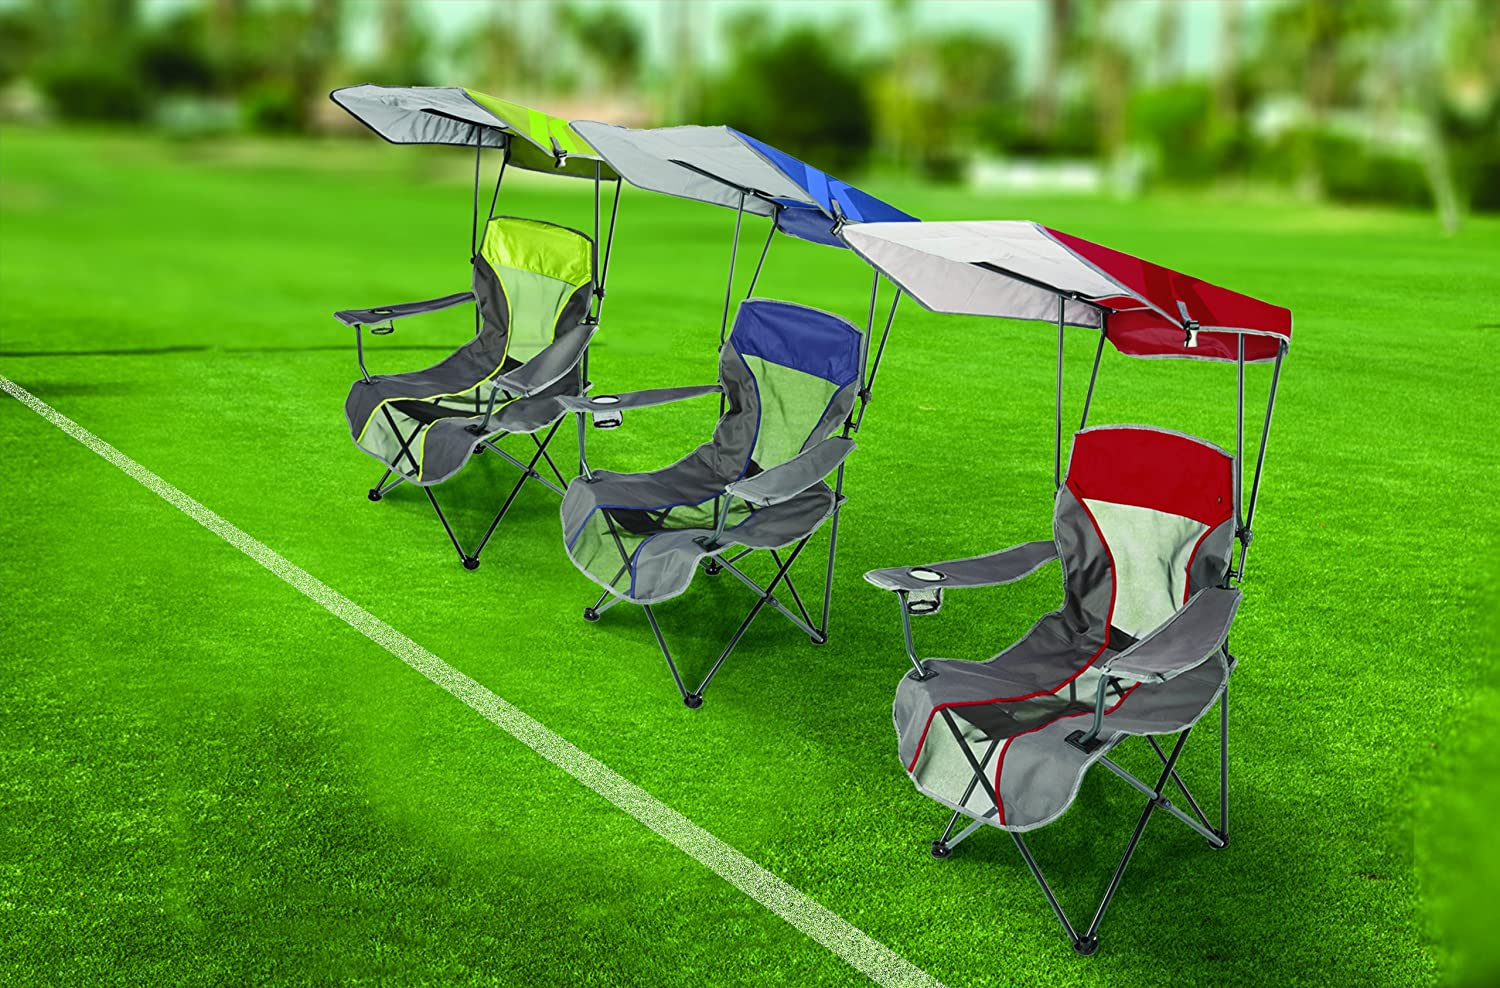 & Kelsyus Premium Canopy Chair: Amazon.ca: Sports u0026 Outdoors